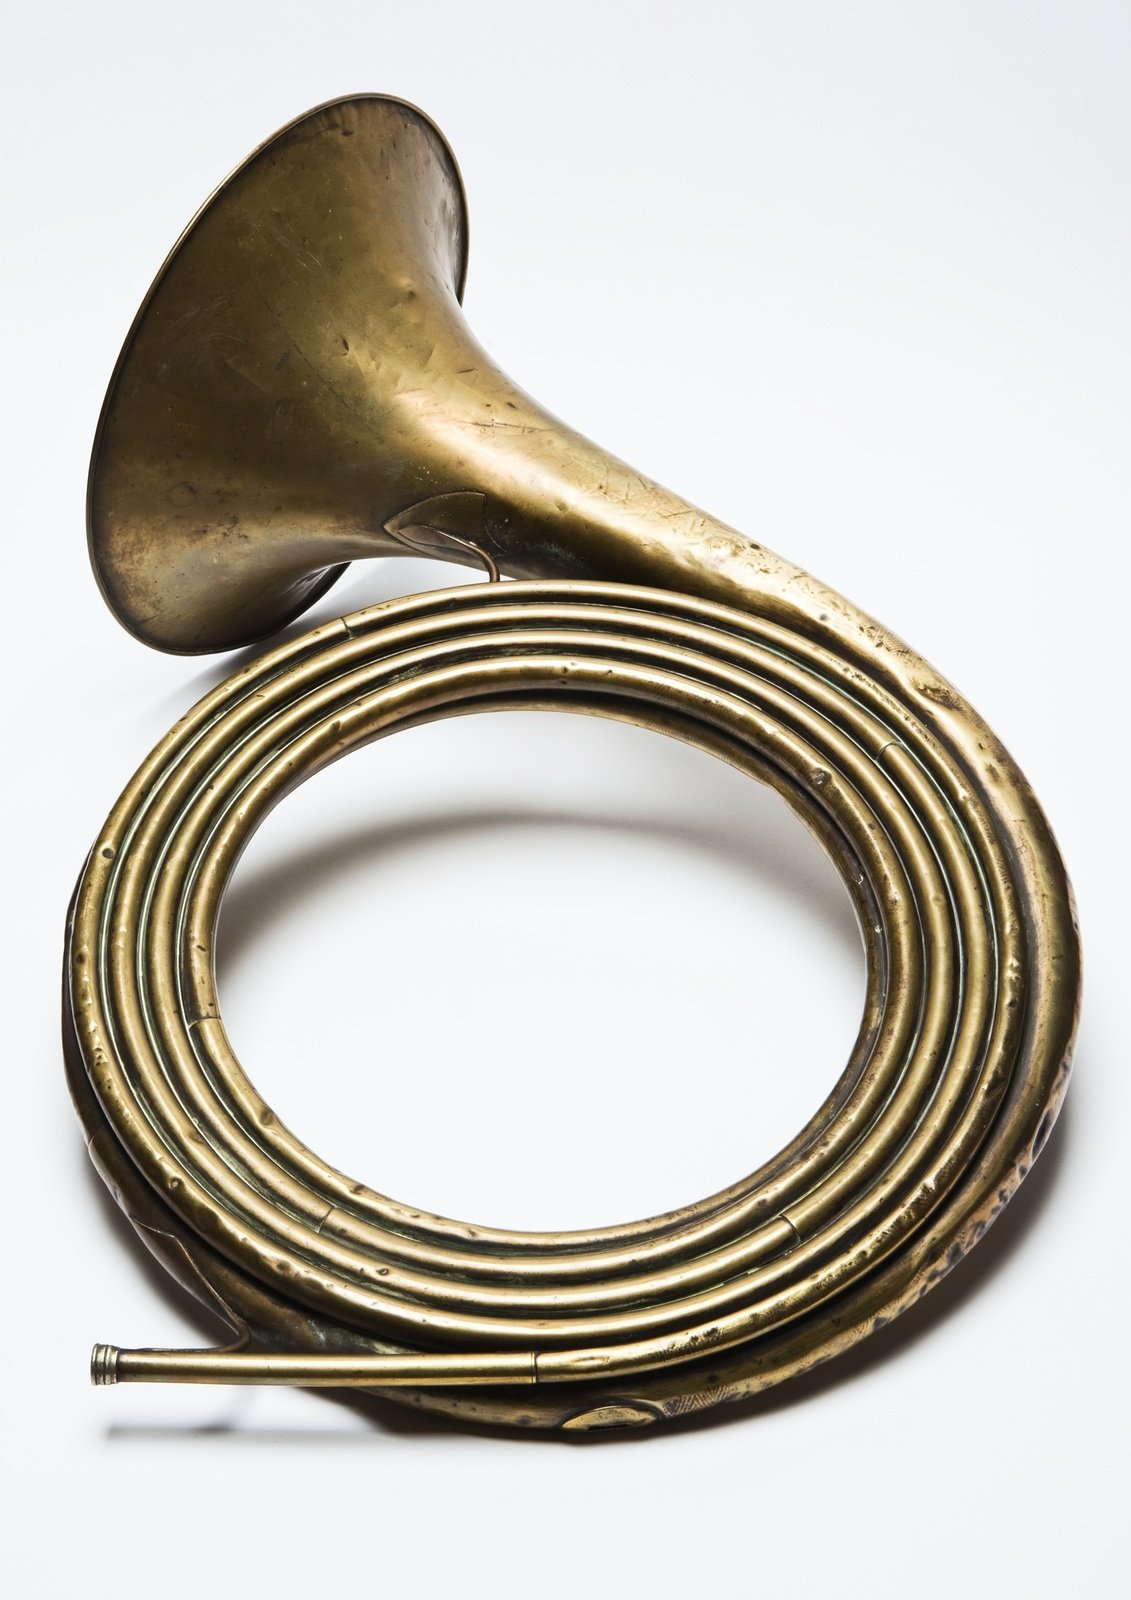 Trompe de chasse contrebasse, 1900  , Millereau, [The unusual feature of this natural horn is its unbroken tube length of over nine metres. It is pitched in 28-ft D. It was intended to add a deep notes to an ensemble of French hunting horns (trompes de chasse).], University of Edinburgh, CC BY-NC-SA